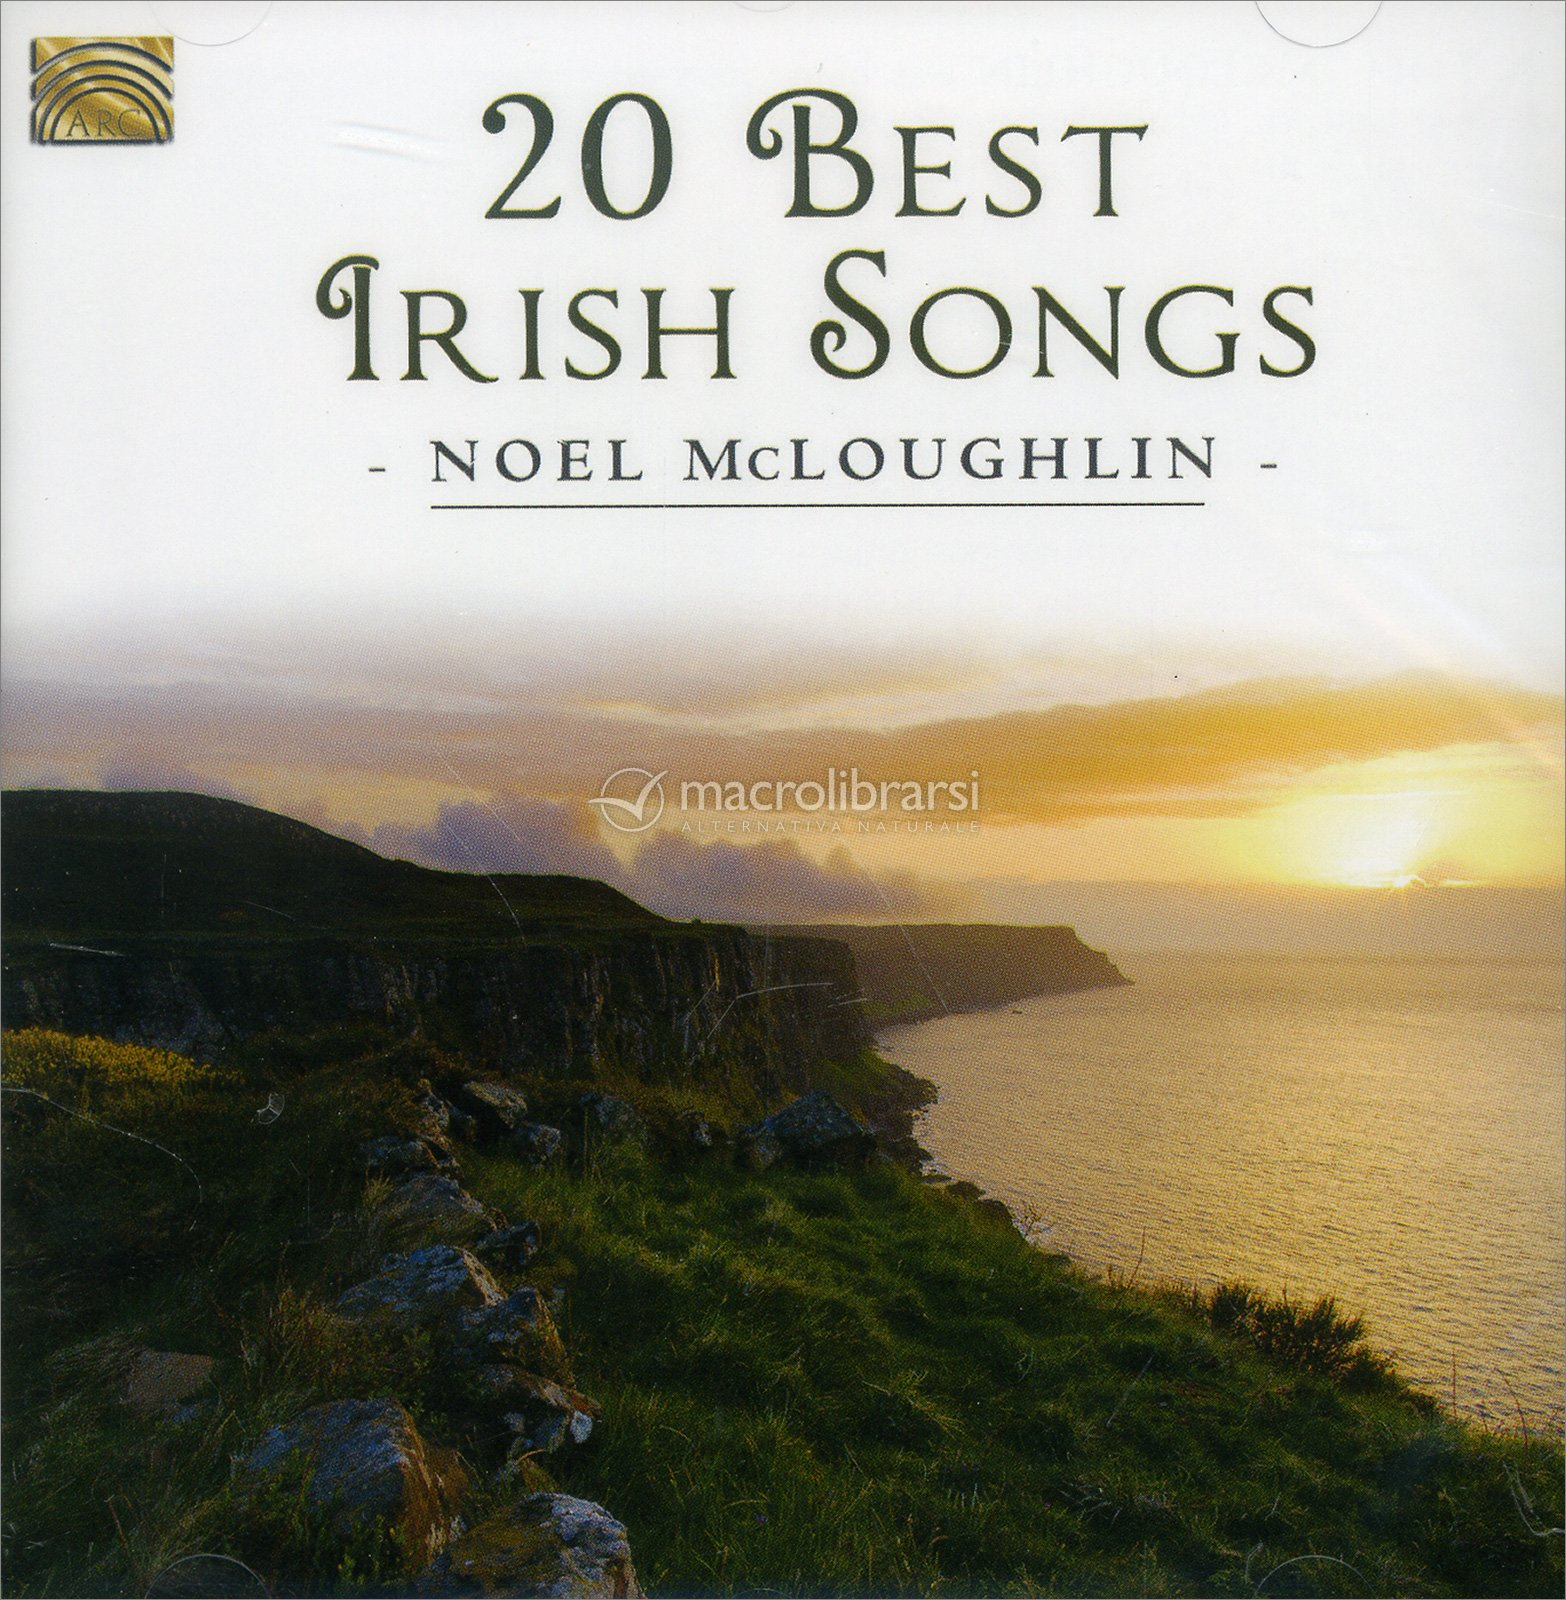 20 Best Irish Songs